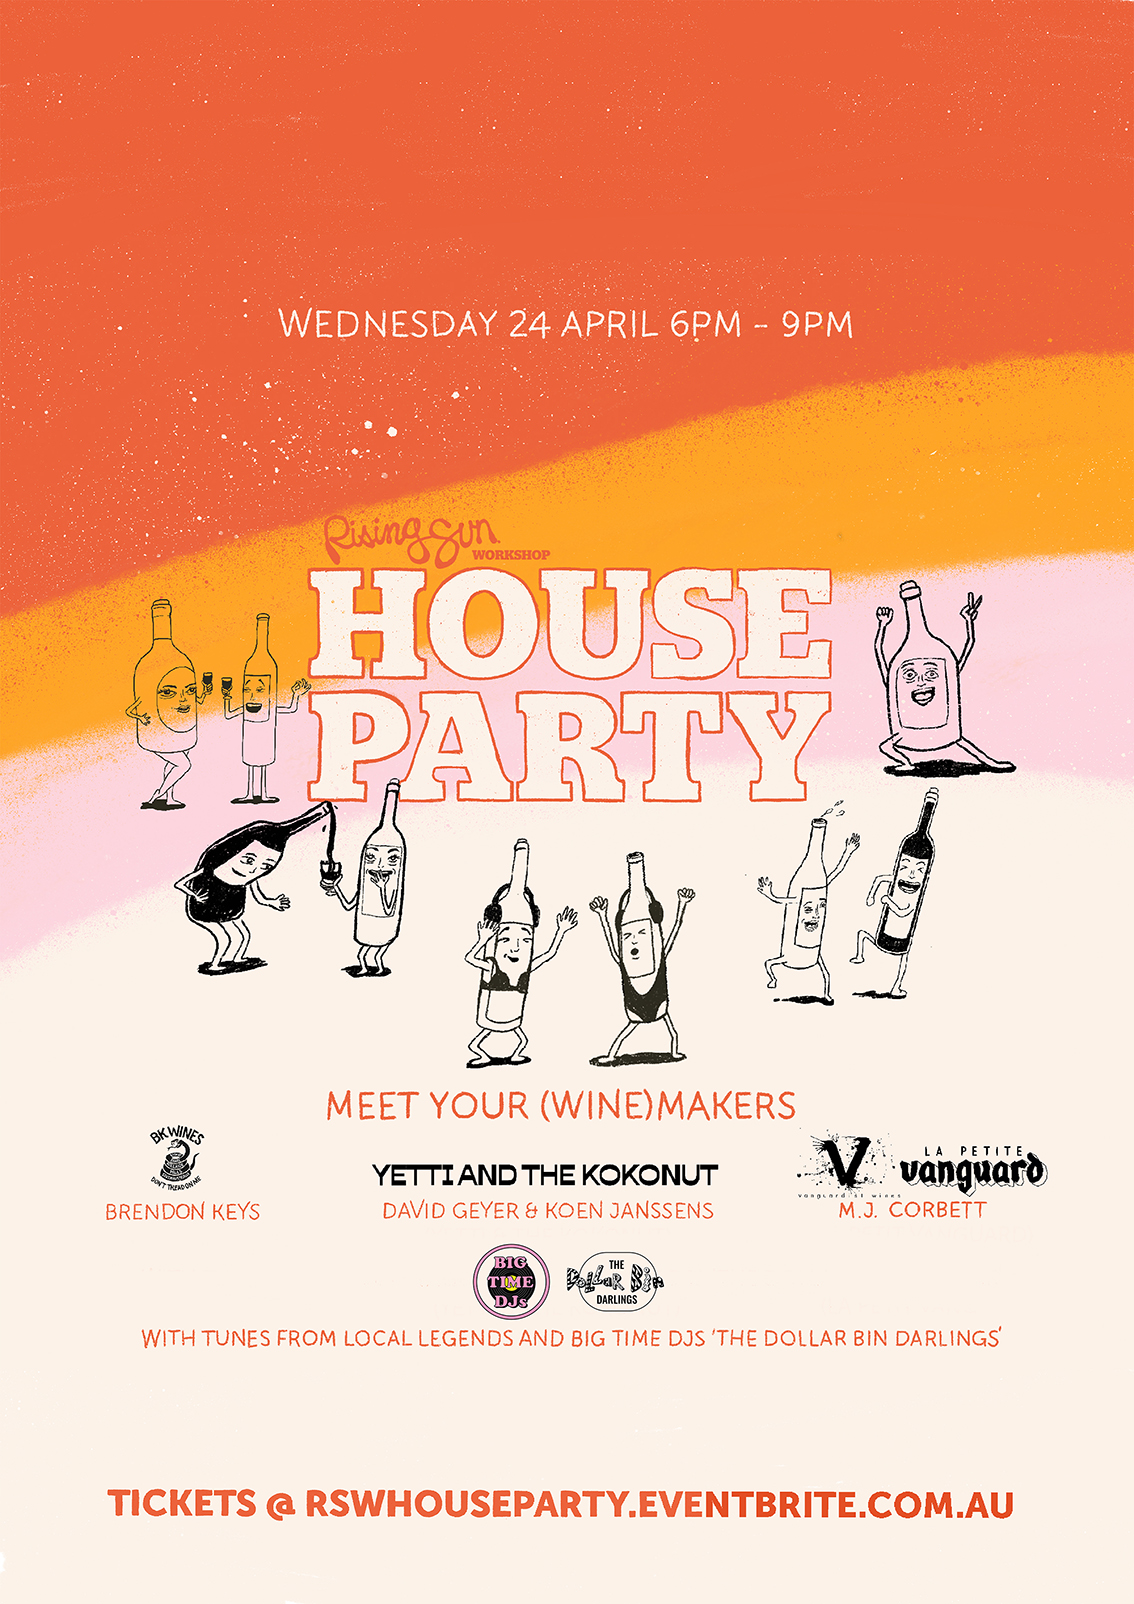 House_Party_Poster_Size (1)small.jpg